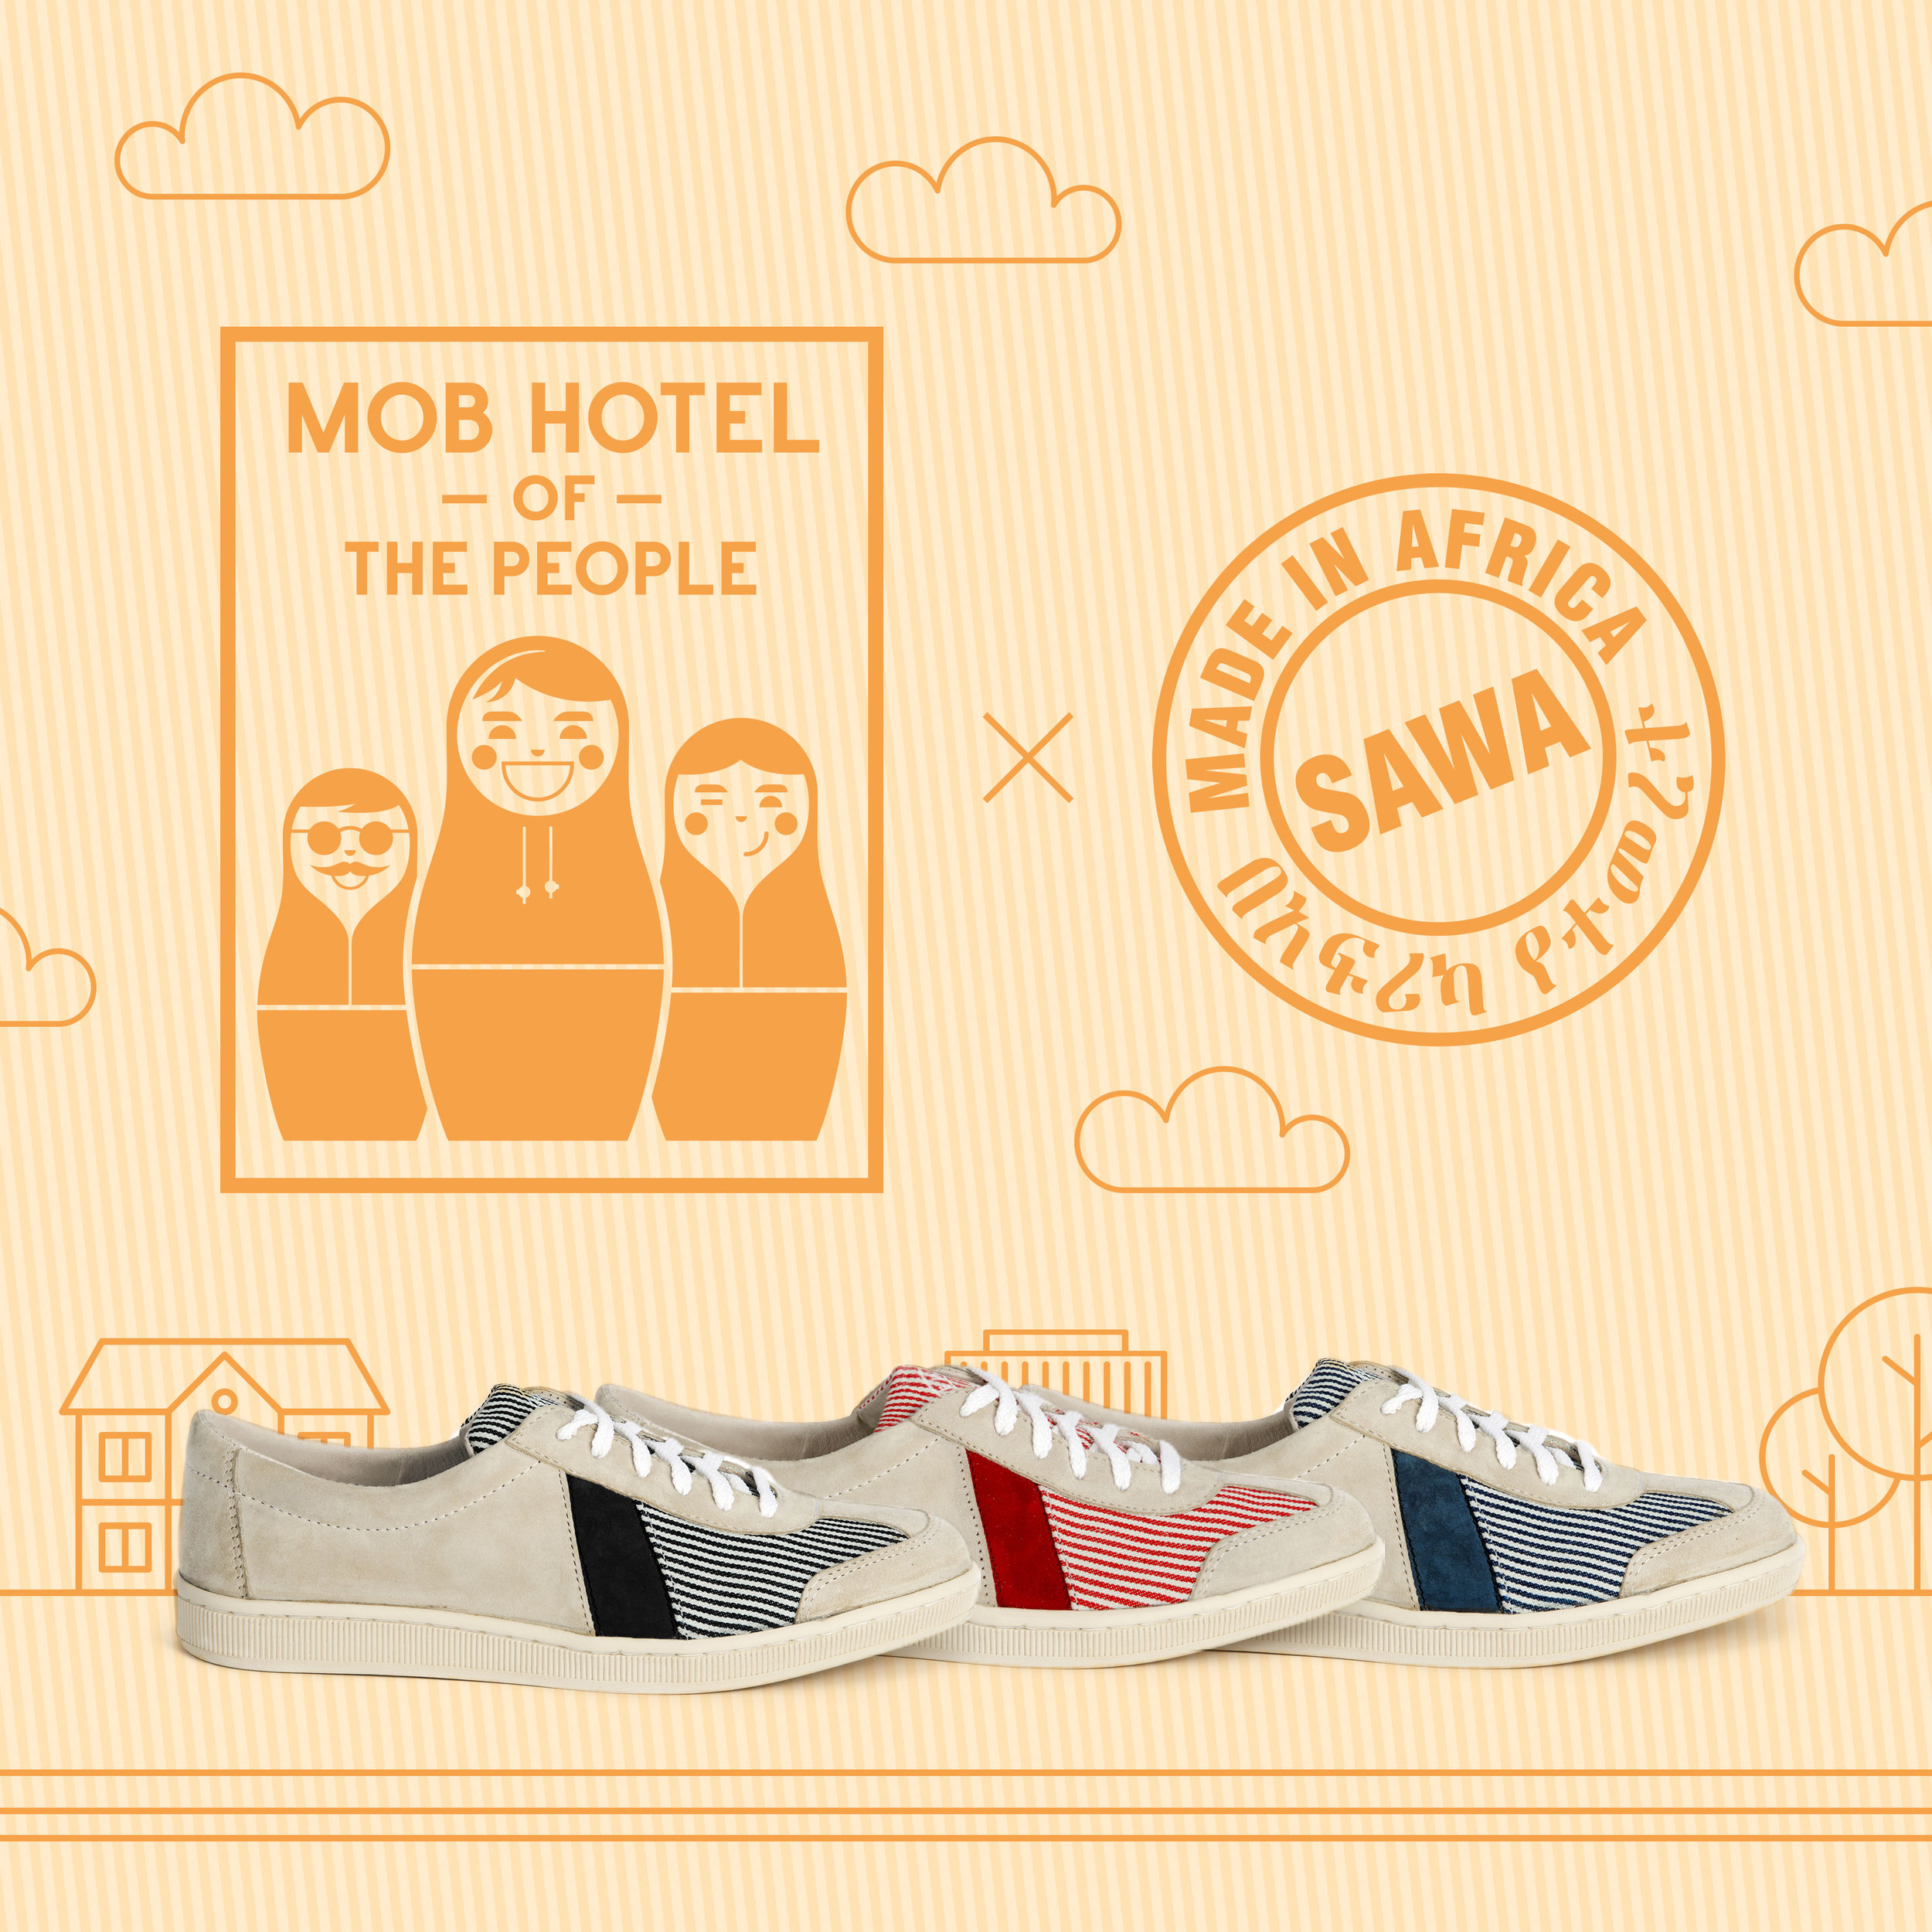 SAWA x Mob Hotel   We have created of footwear collection for the unexpected  Mob Hotel  located in the heart of the  Paris  flea market.   www.mobhotel.com